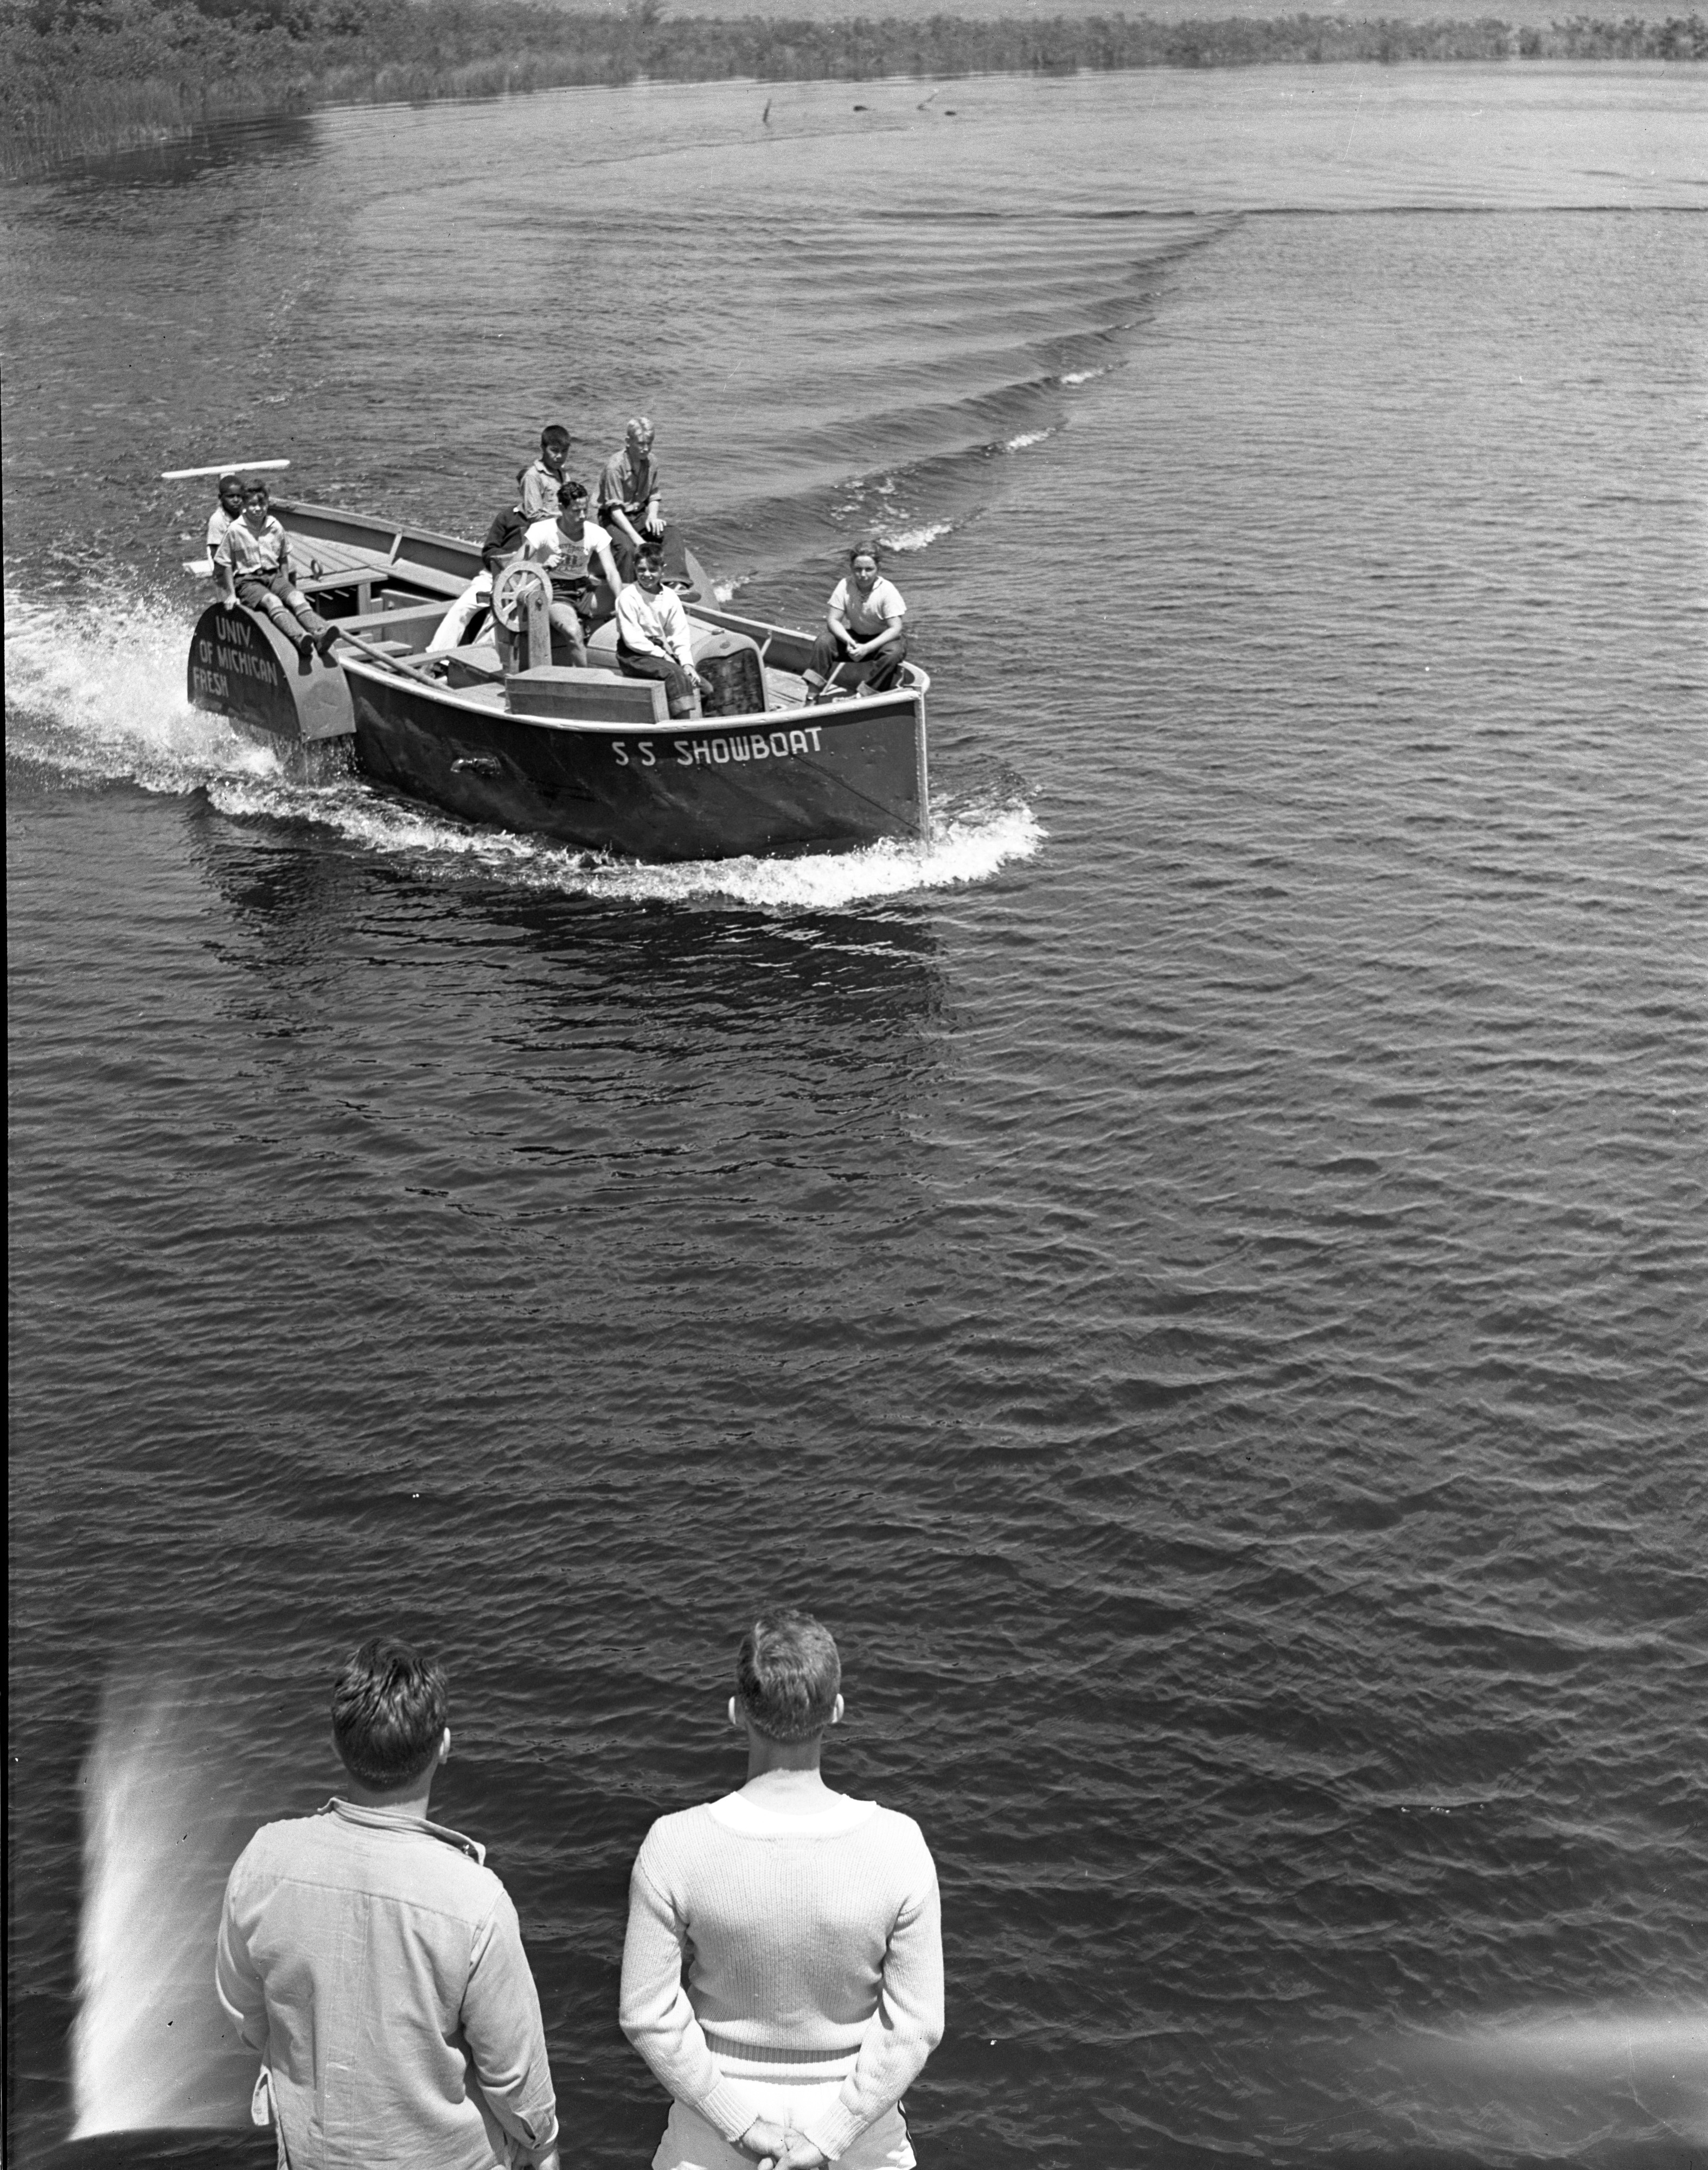 Campers From The University of Michigan's Fresh Air Camp Take A Boat Ride, July 1939 image